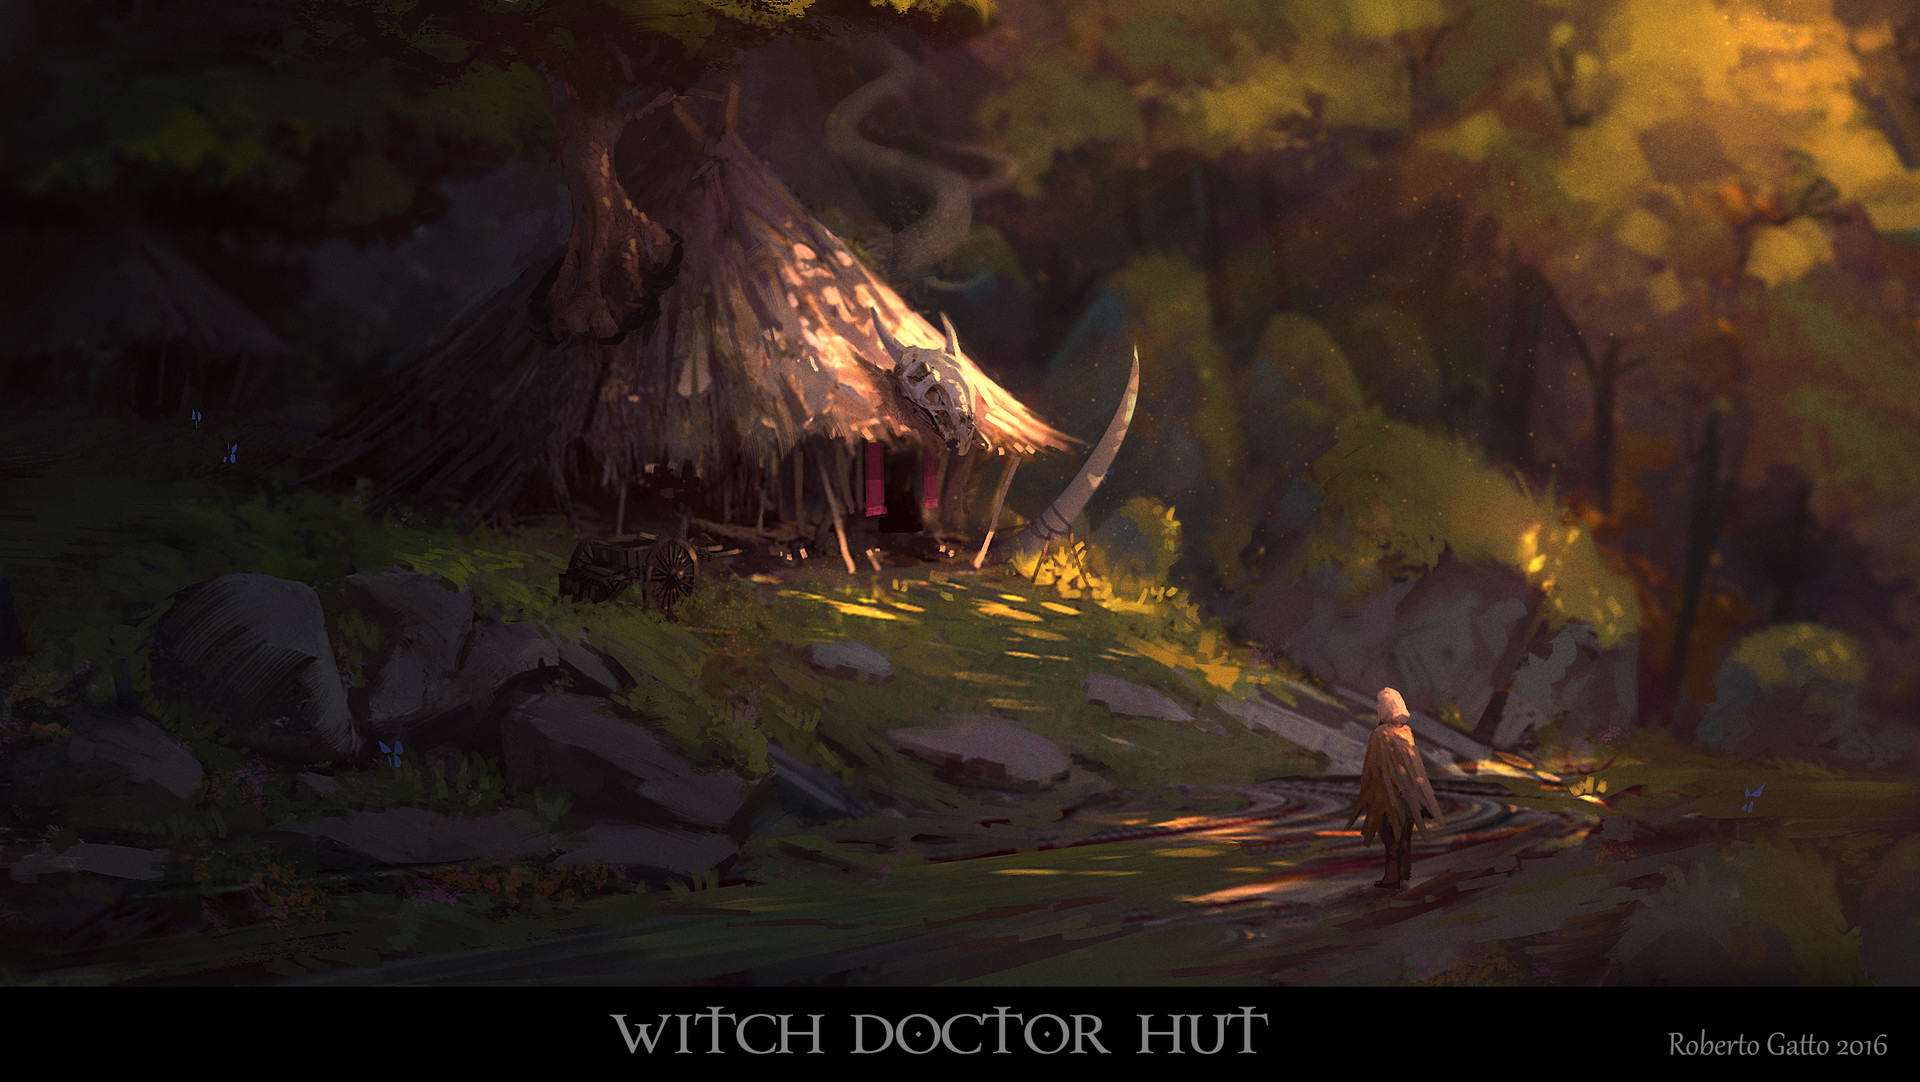 Roberto gatto witch doctor hut concept